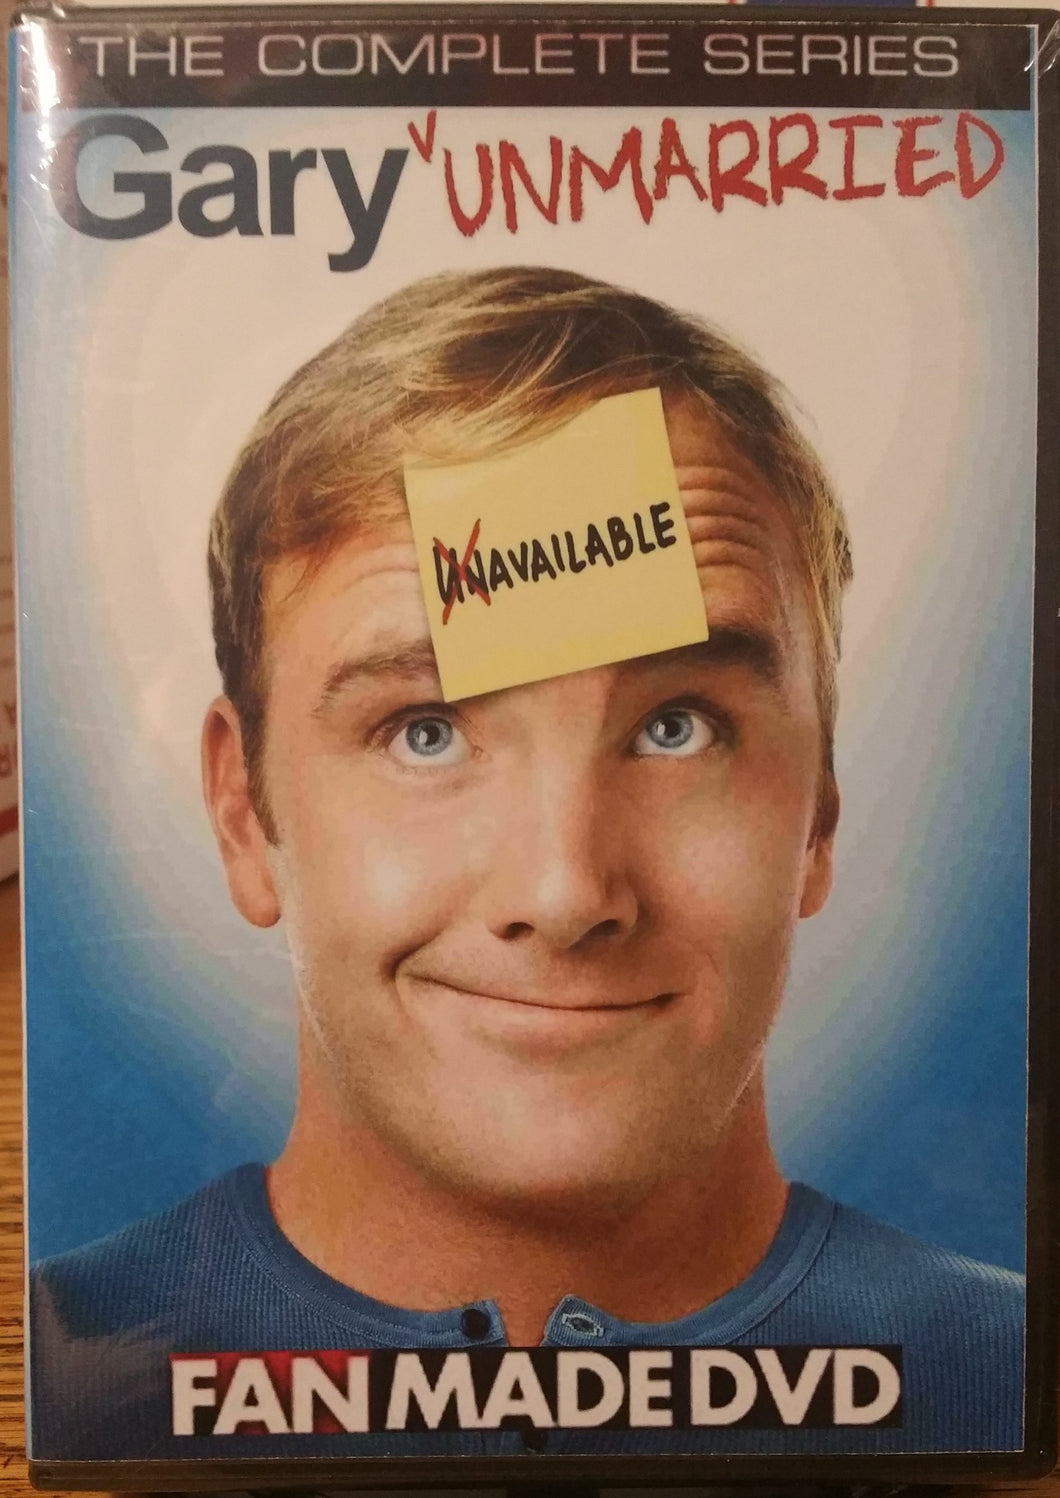 GARY UNMARRIED(2008)THE COMPLETE TV SERIES ON 4 DVD'S Jay Mohr Paula Marshall Jaime King 37 EPS